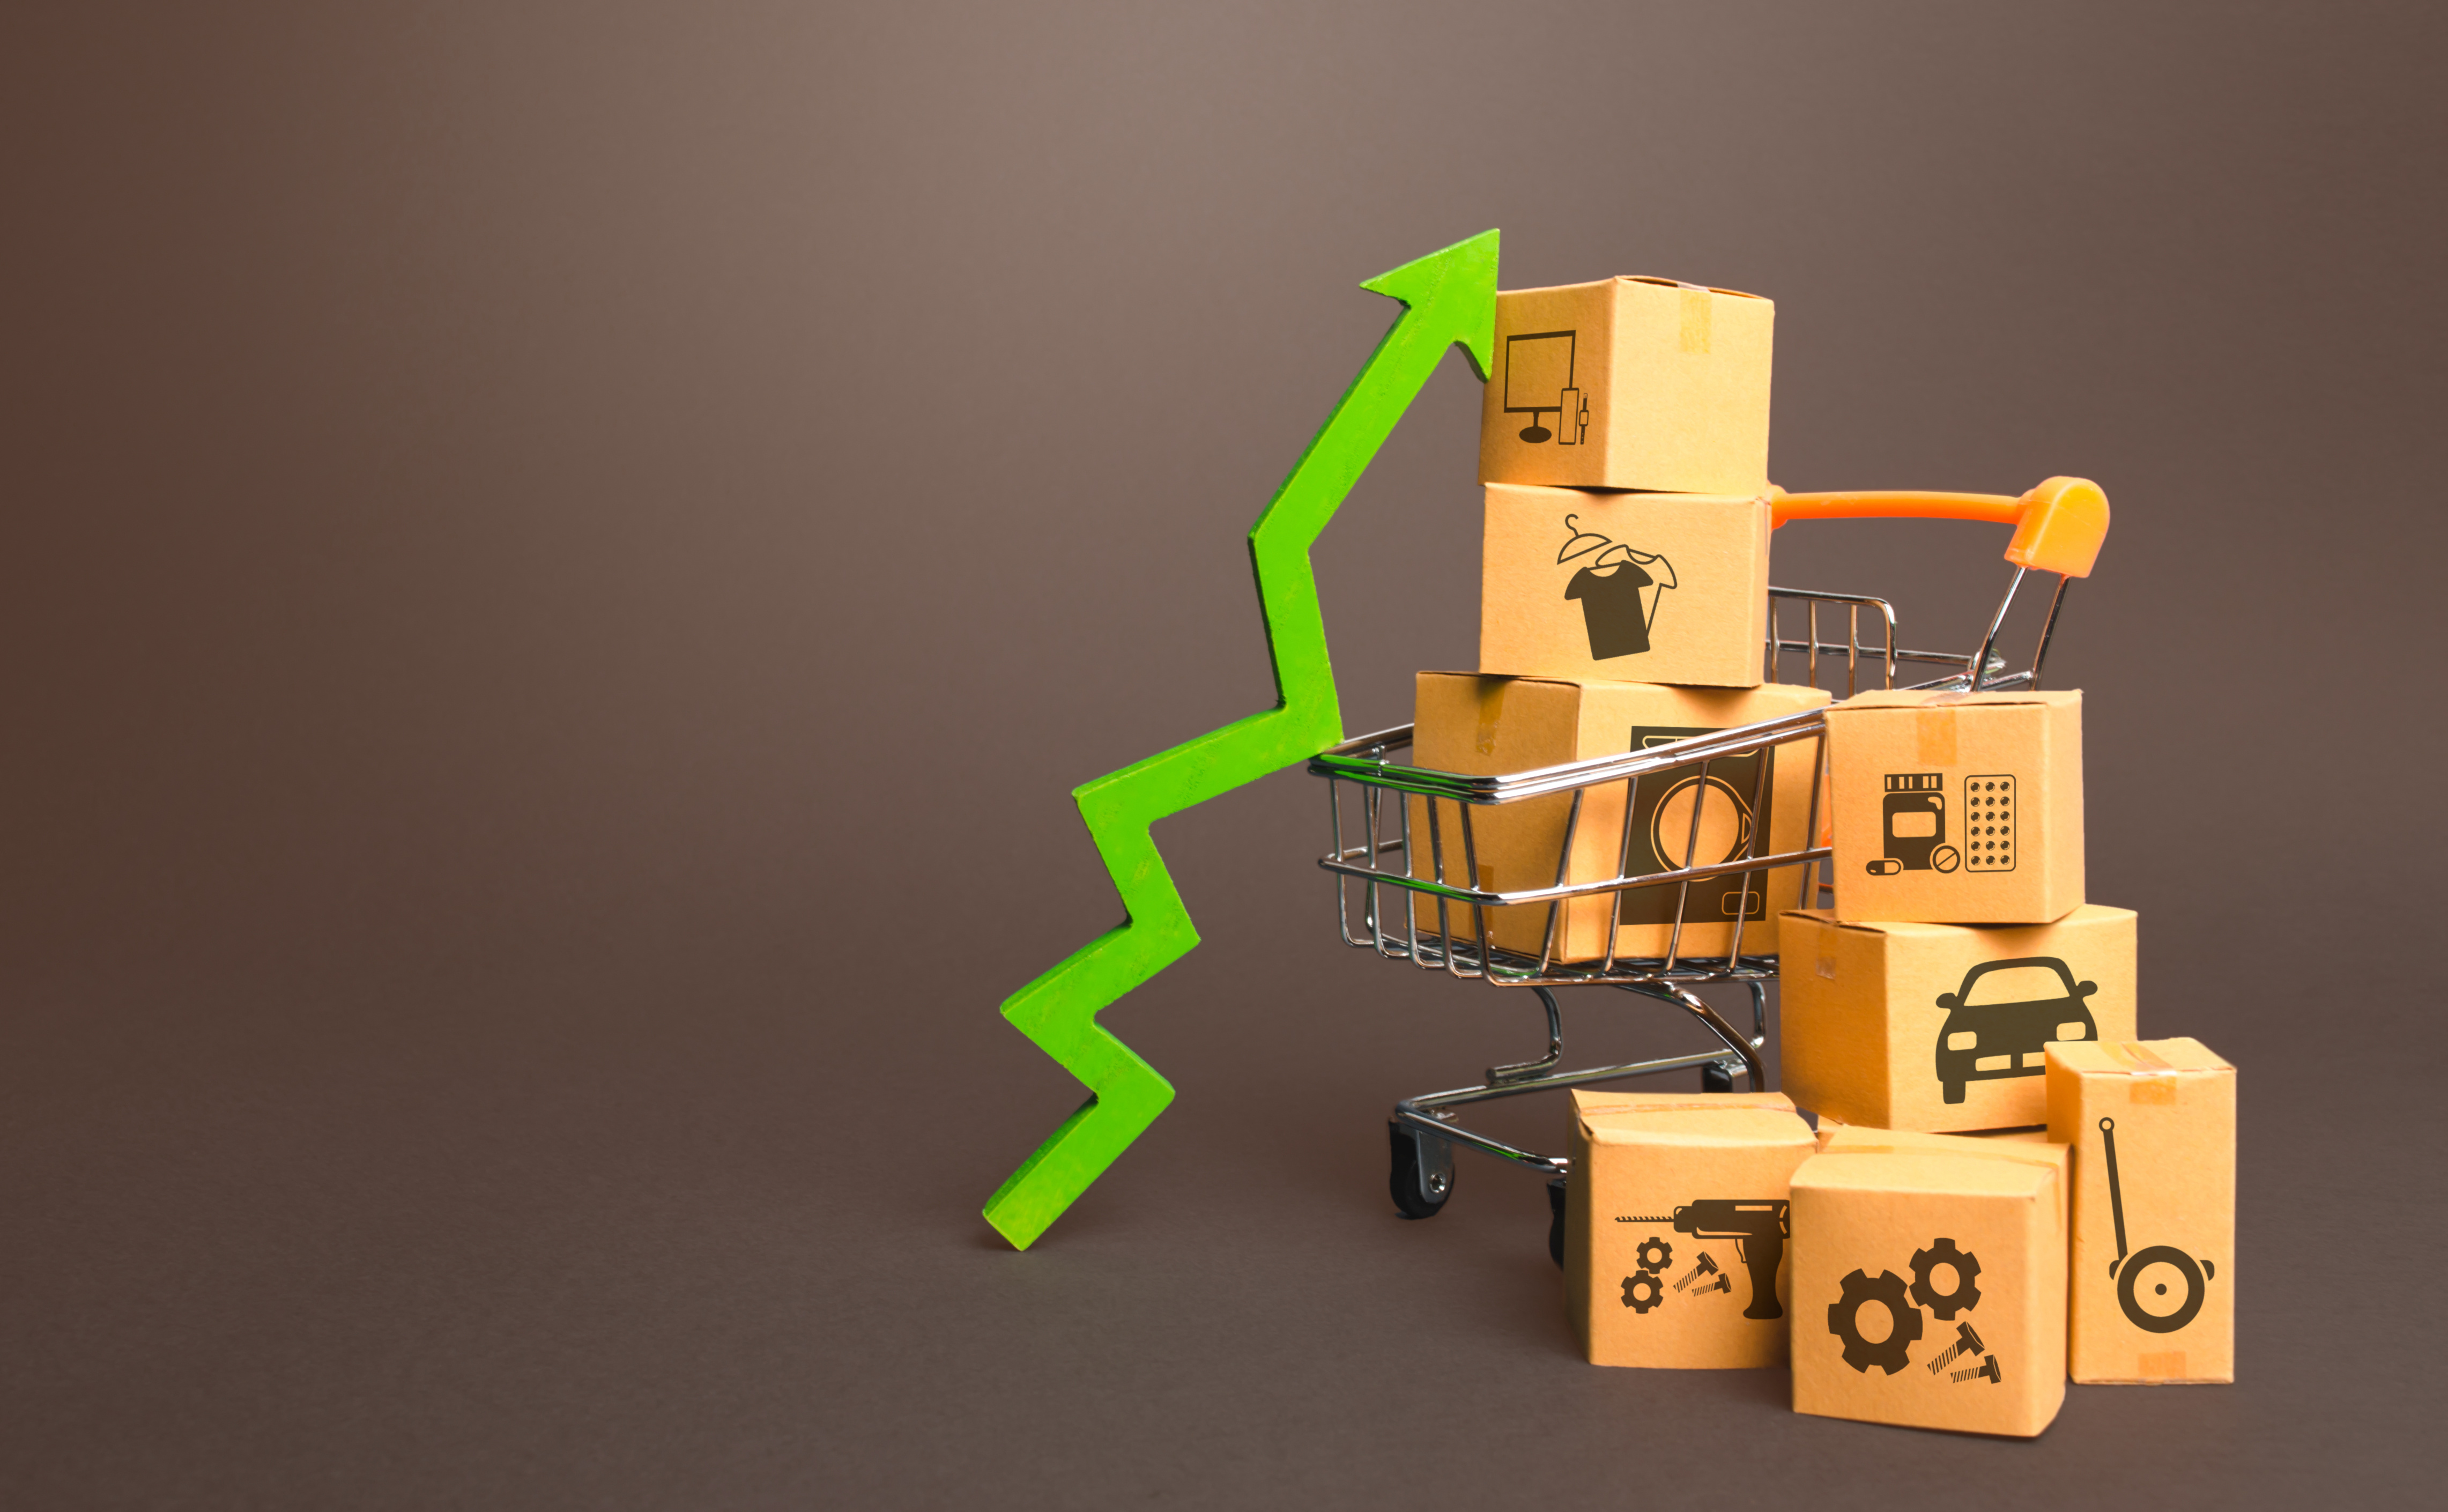 e-Commerce marketing agency drives traffic to your website